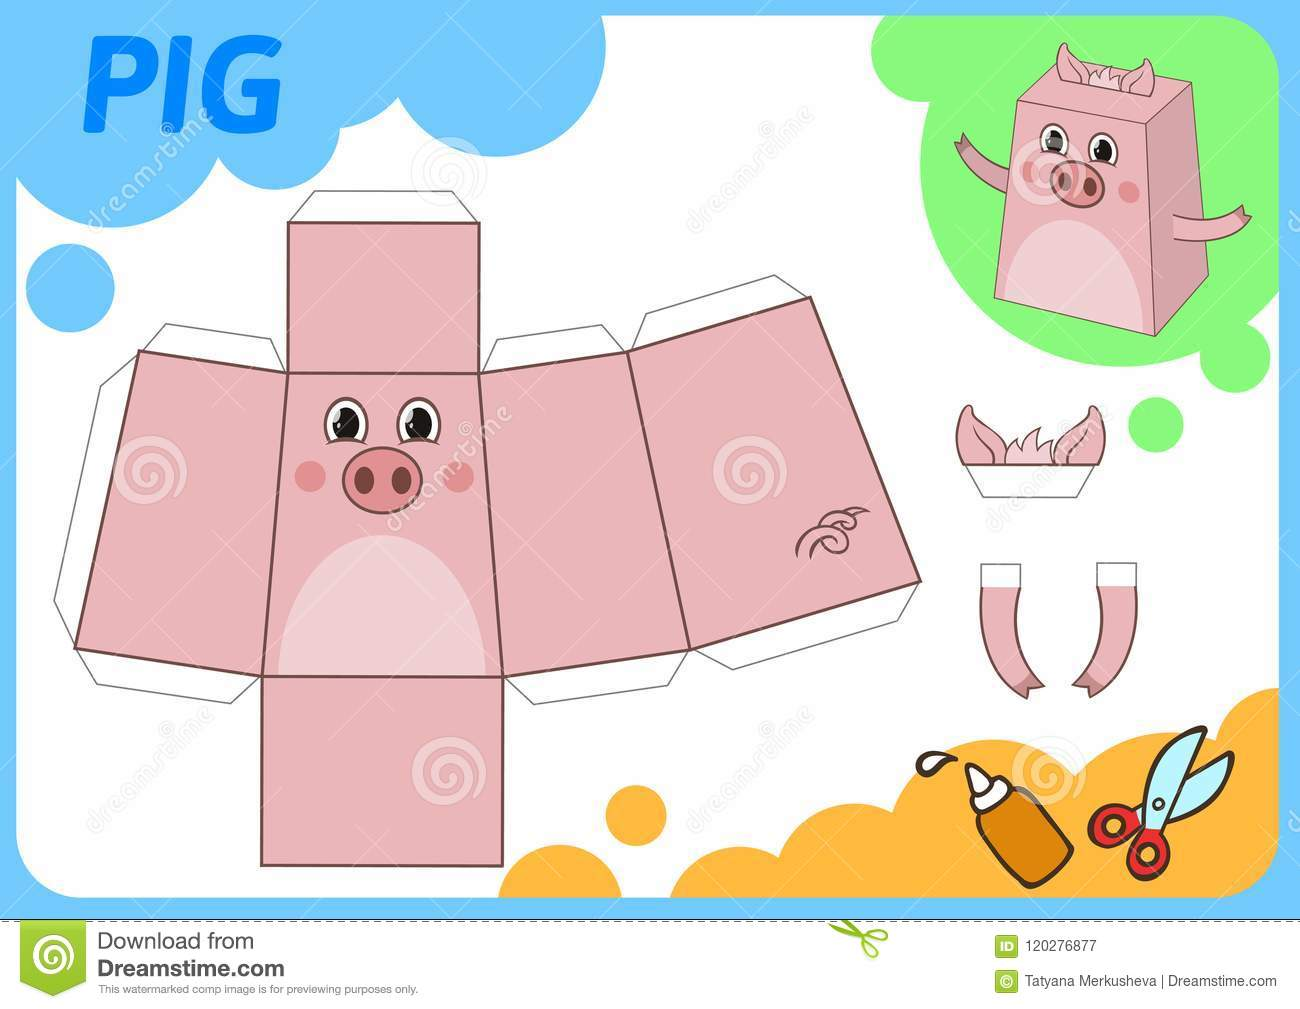 Funny Pig Paper Model Small Home Craft Project DIY Game Cut Out